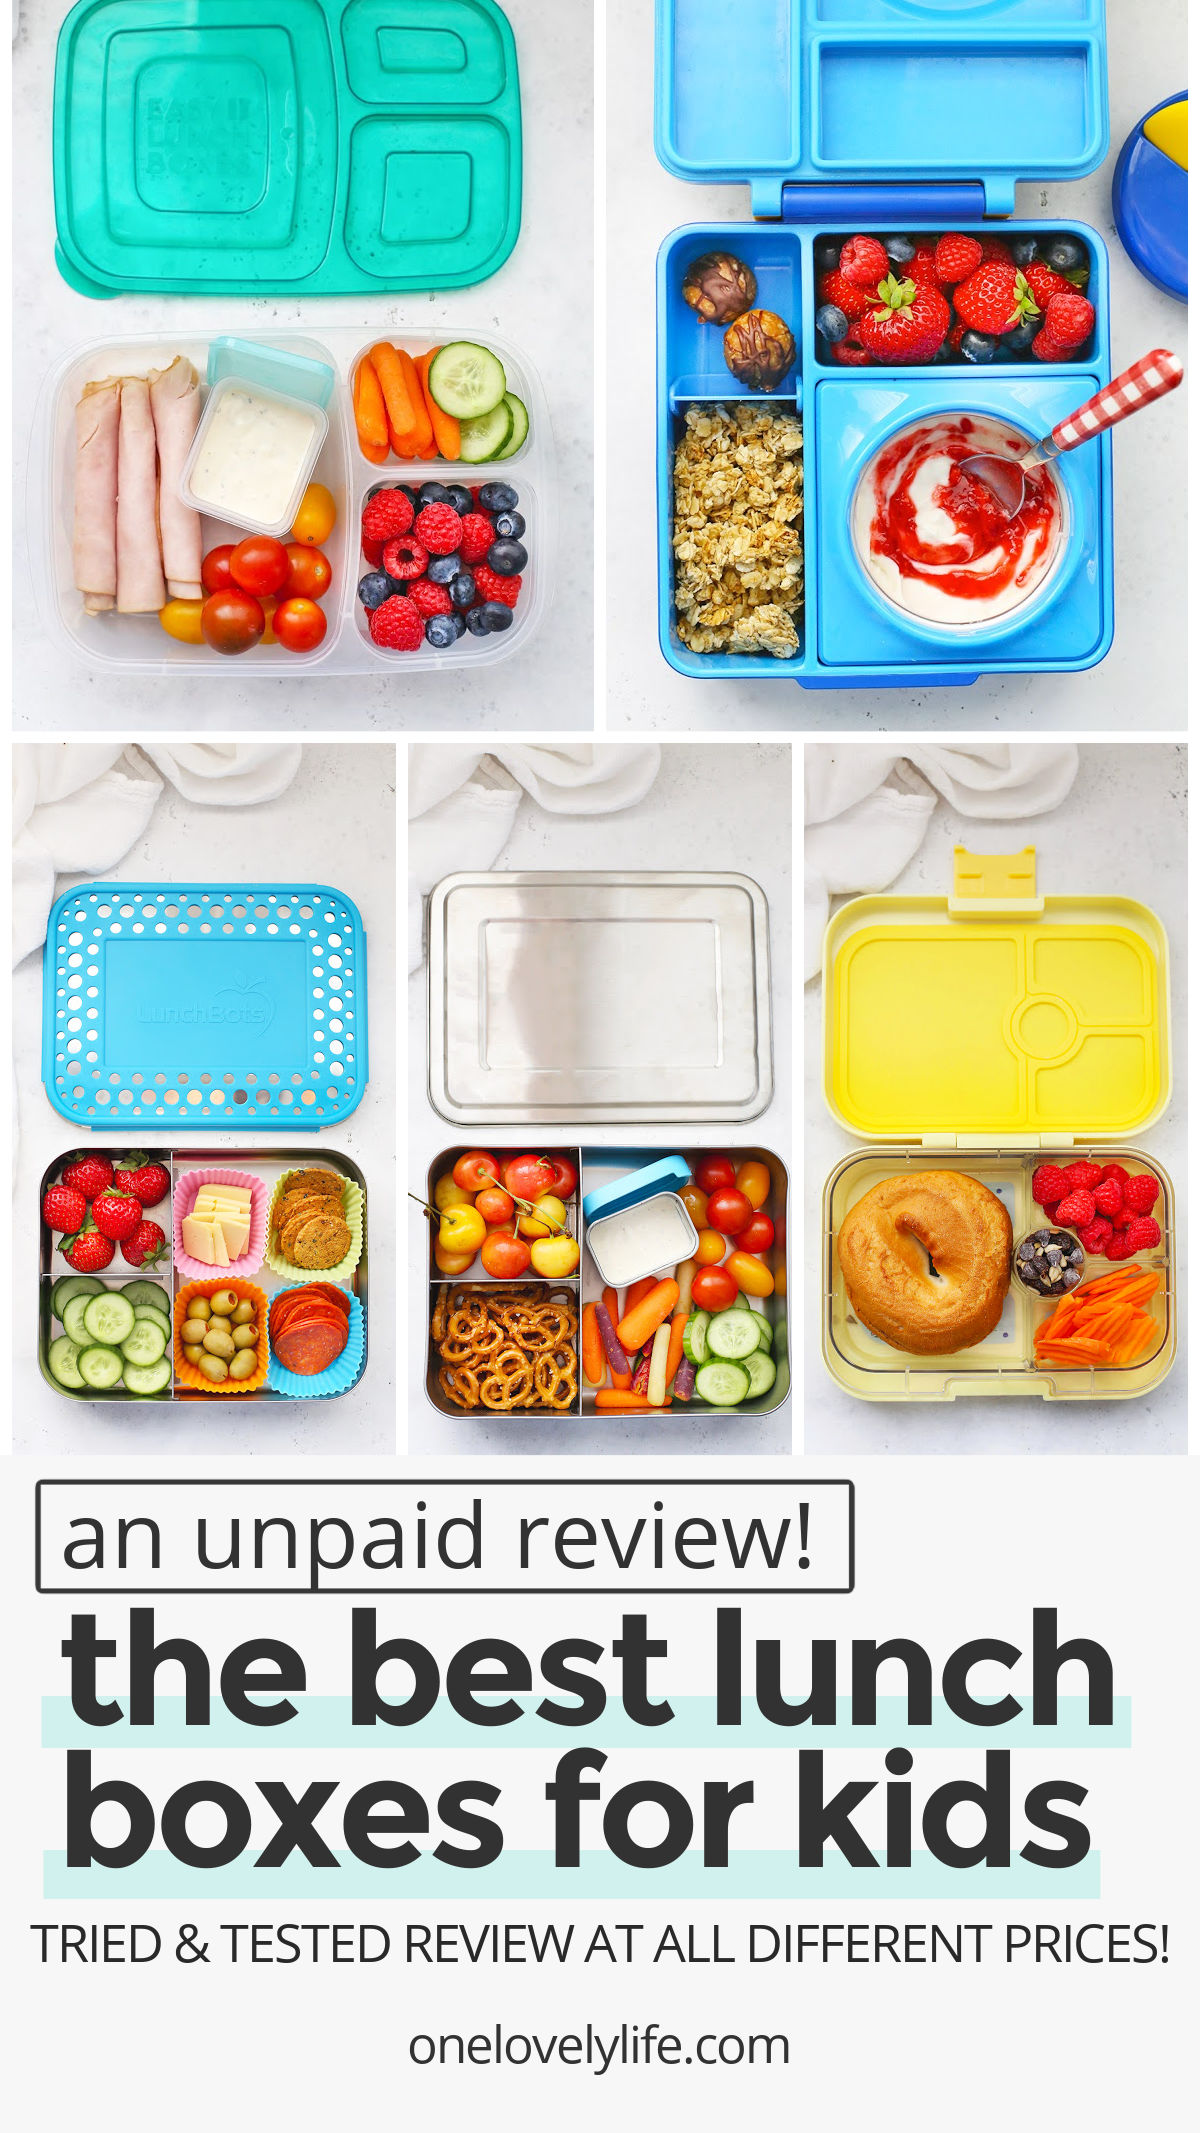 The BEST School Lunch Boxes and Reusable Bags for packing school lunches! Find out the pros and cons of each one. // school lunches // packed lunches // kids lunch box review // lunch boxes // the best kids' lunch boxes // reusable bags // omie box lunch boxes // easy lunchboxes // packed lunches // stashers bags // rezip bags // russbe bags // eco friendly // less waste // healthy kids